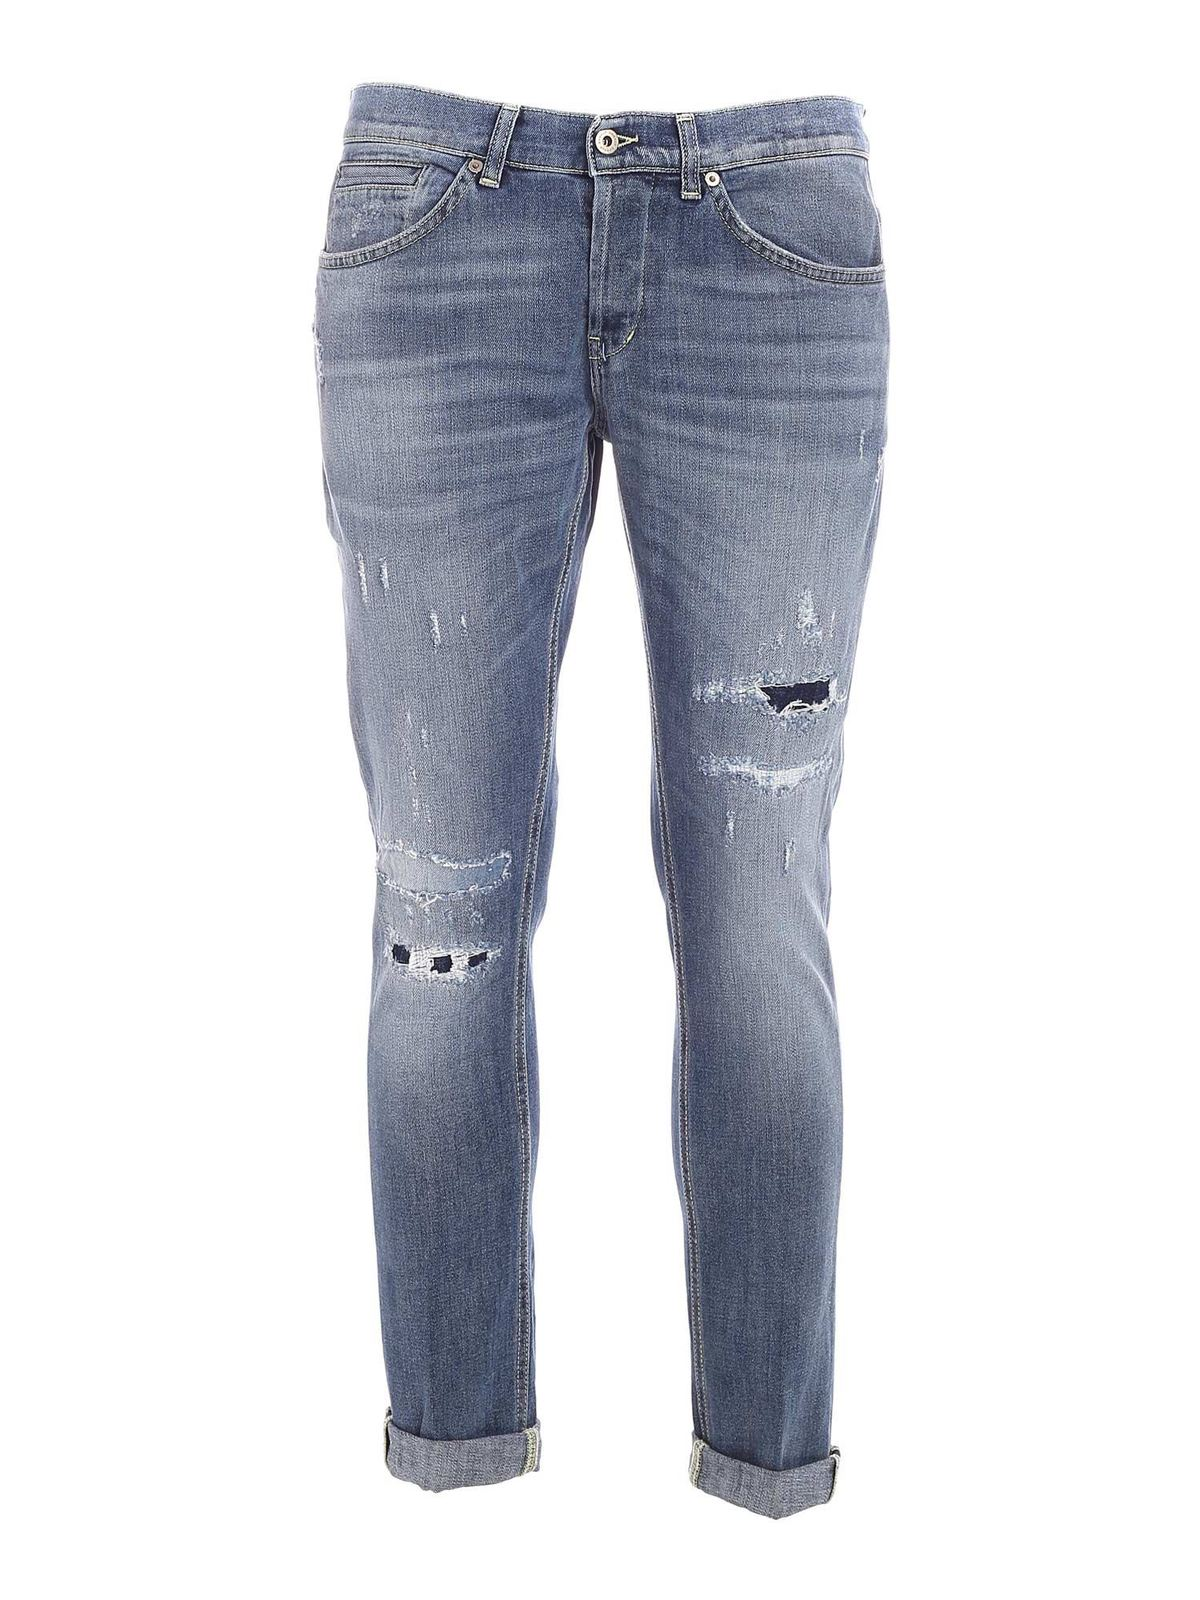 Dondup Cottons GEORGE JEANS IN BLUE